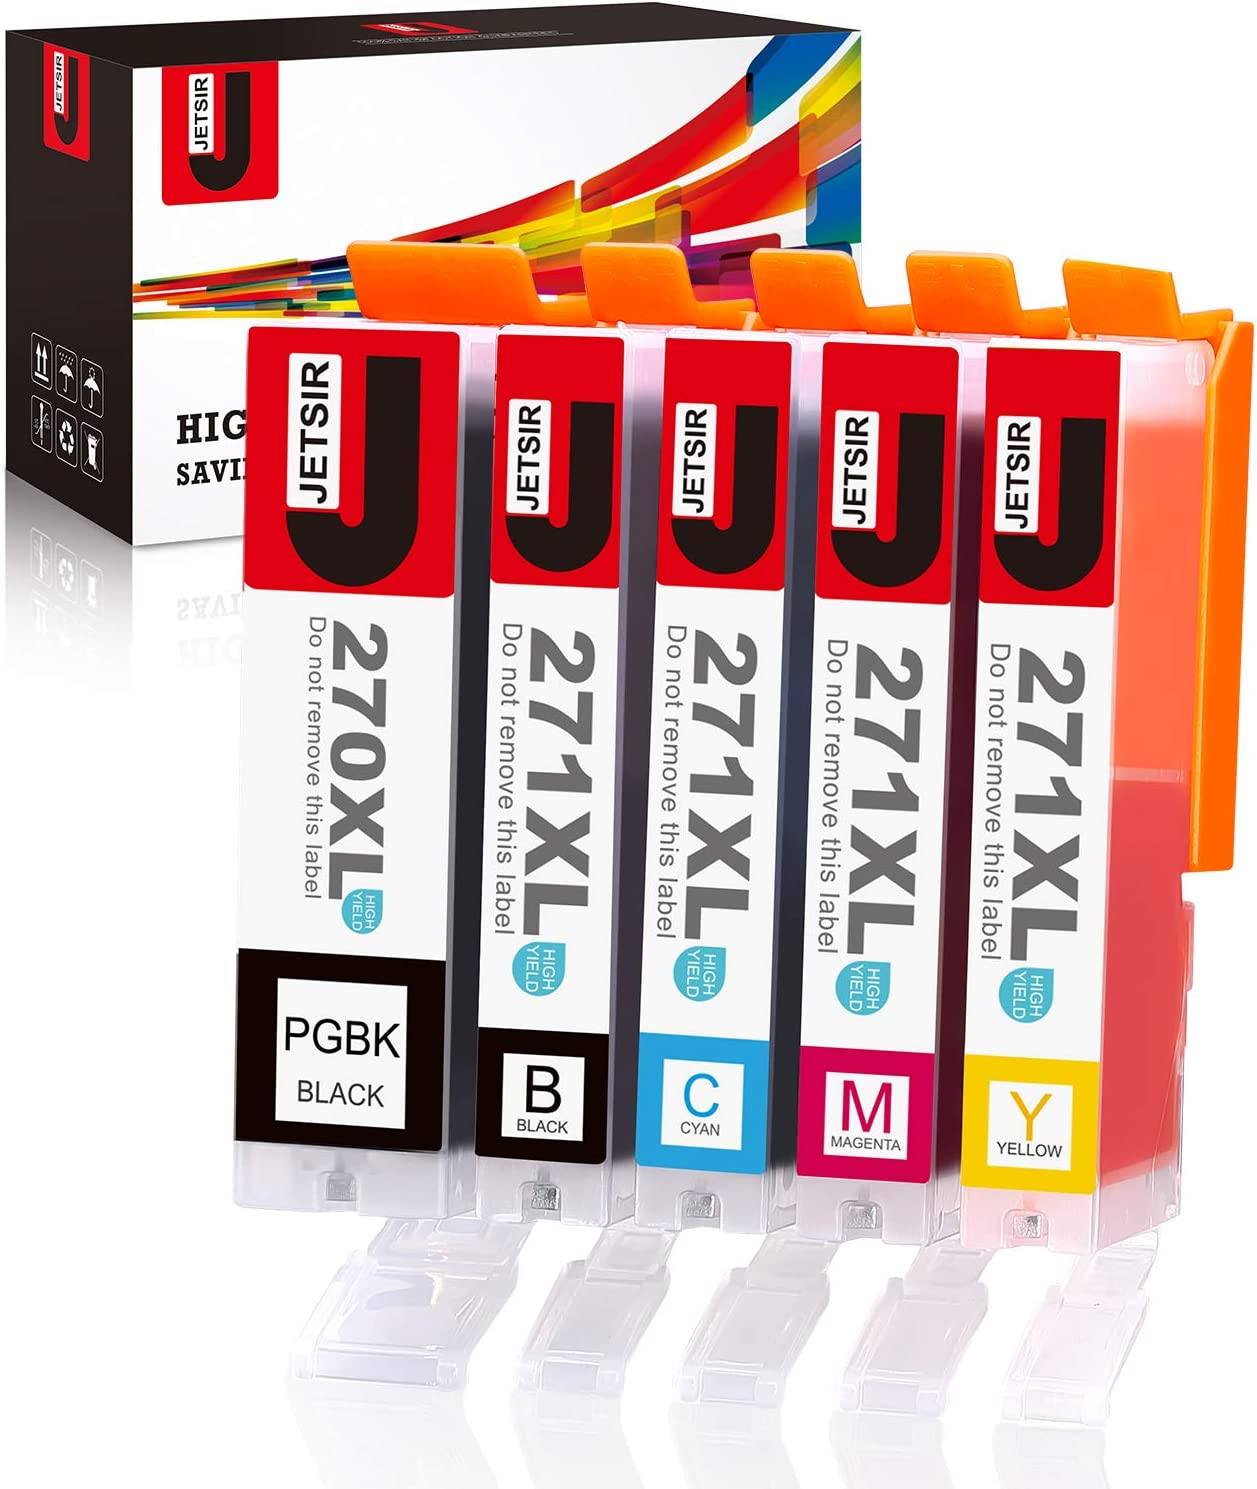 5 Pack 1 PGBK,1 BK,1 Cyan,1 Magenta,1 Yellow Foiset Compatible Ink Cartridges Replacement for Canon PGI-270XL CLI-271XL to use with PIXMA MG6820 MG5720